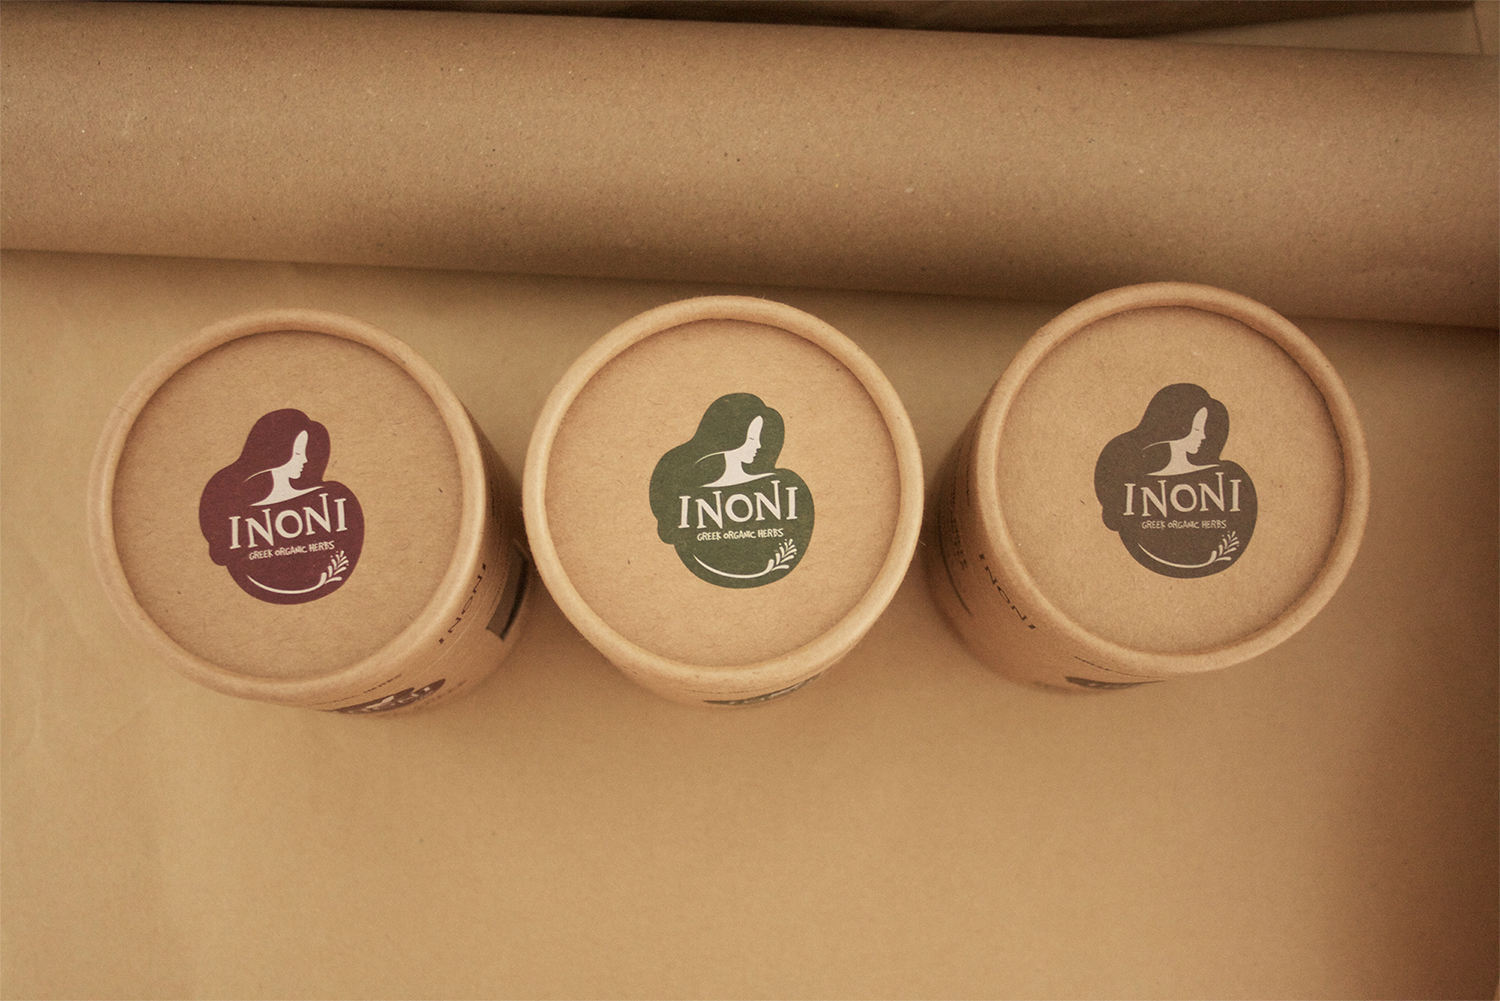 Inoni_Packaging_03